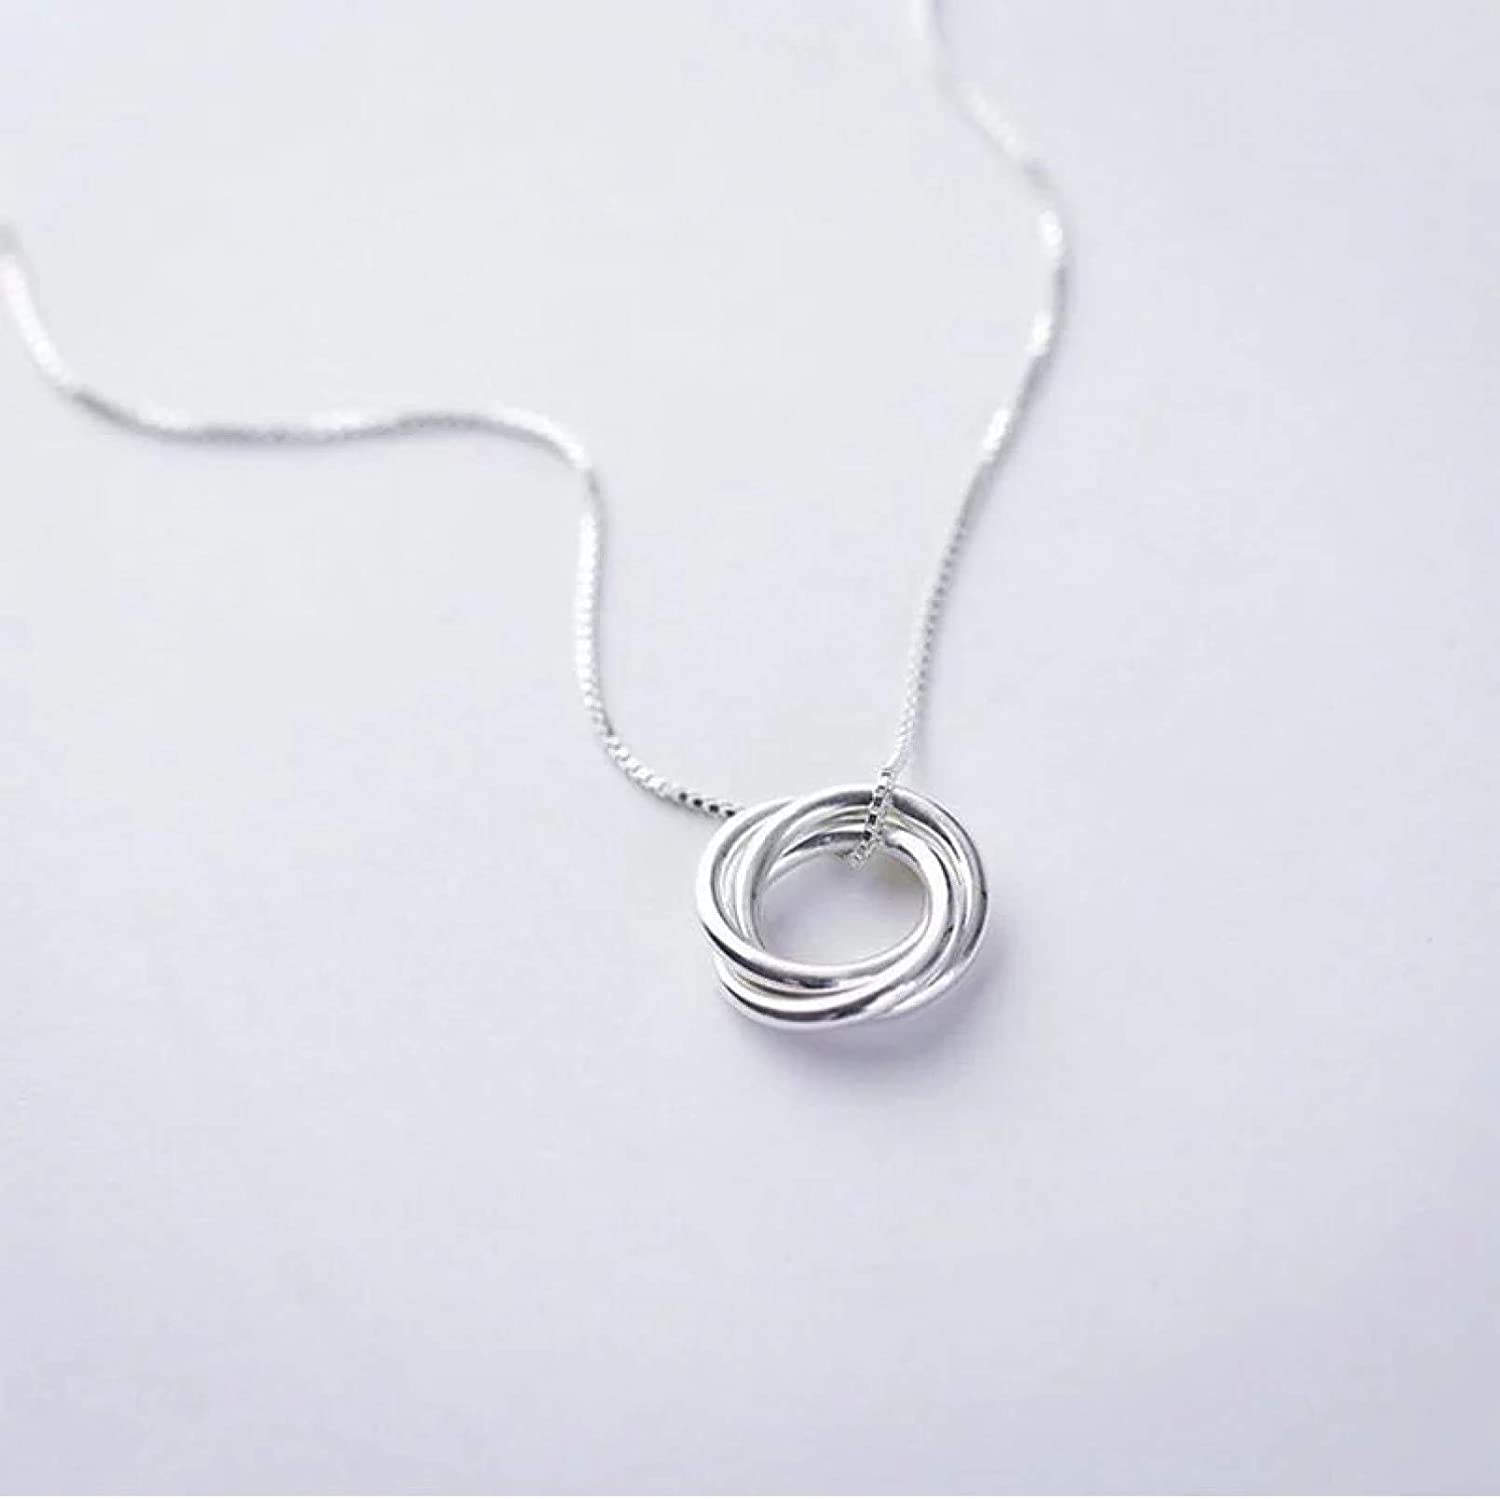 Necklace Pendant Vintage Charming Three Circle Pendant Necklace for Women Chain Choker Collar collares Christmas Mother's Day Valentine's Day Birthday Gift